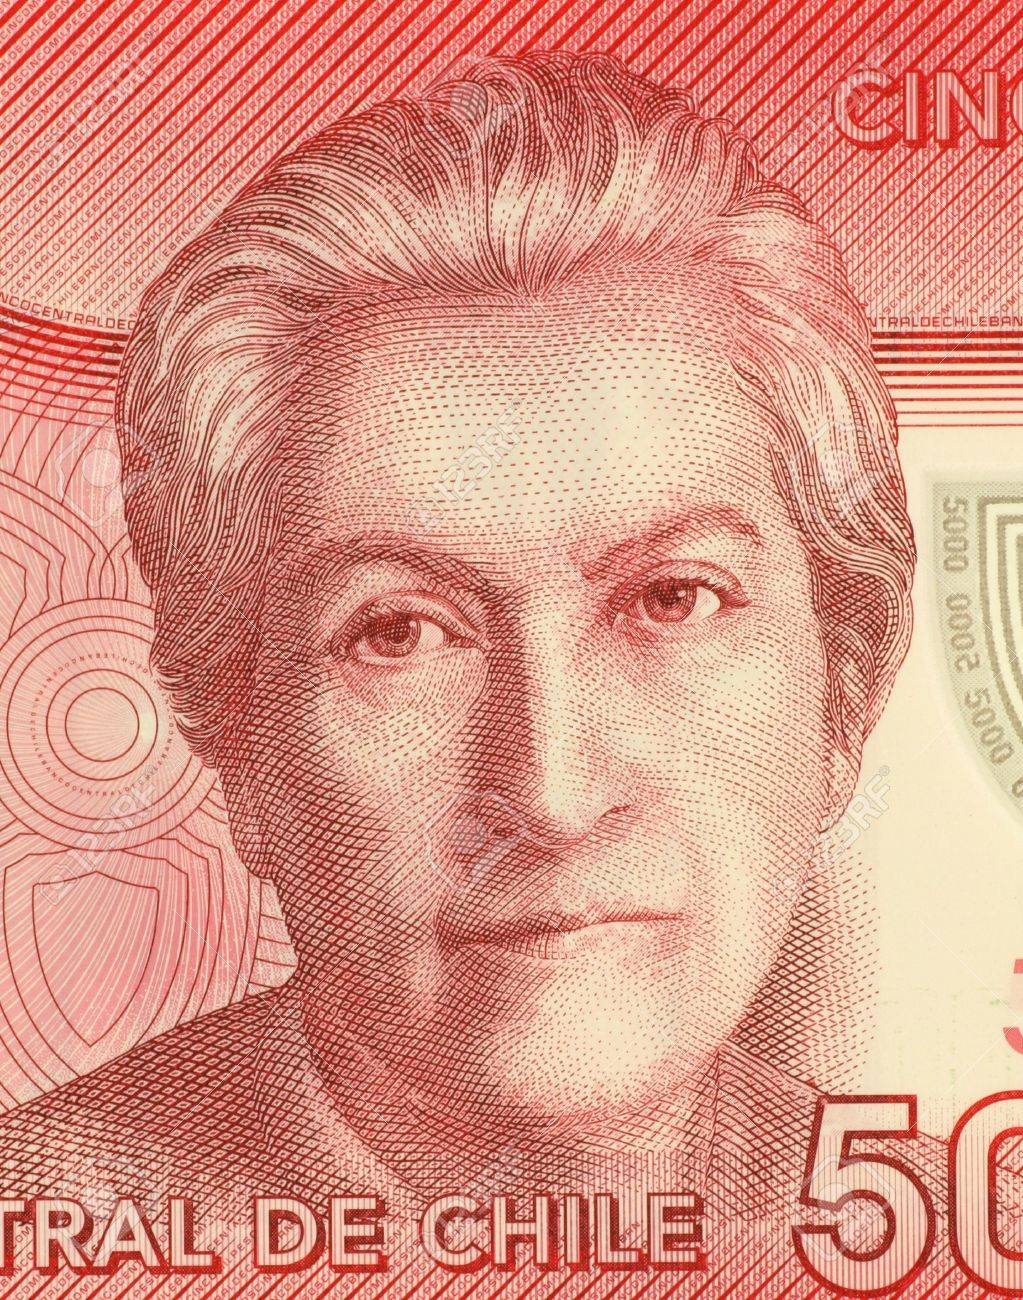 Gabriela Mistral 1889 1957 On 5000 Pesos 2009 Banknote From Chile Chilean